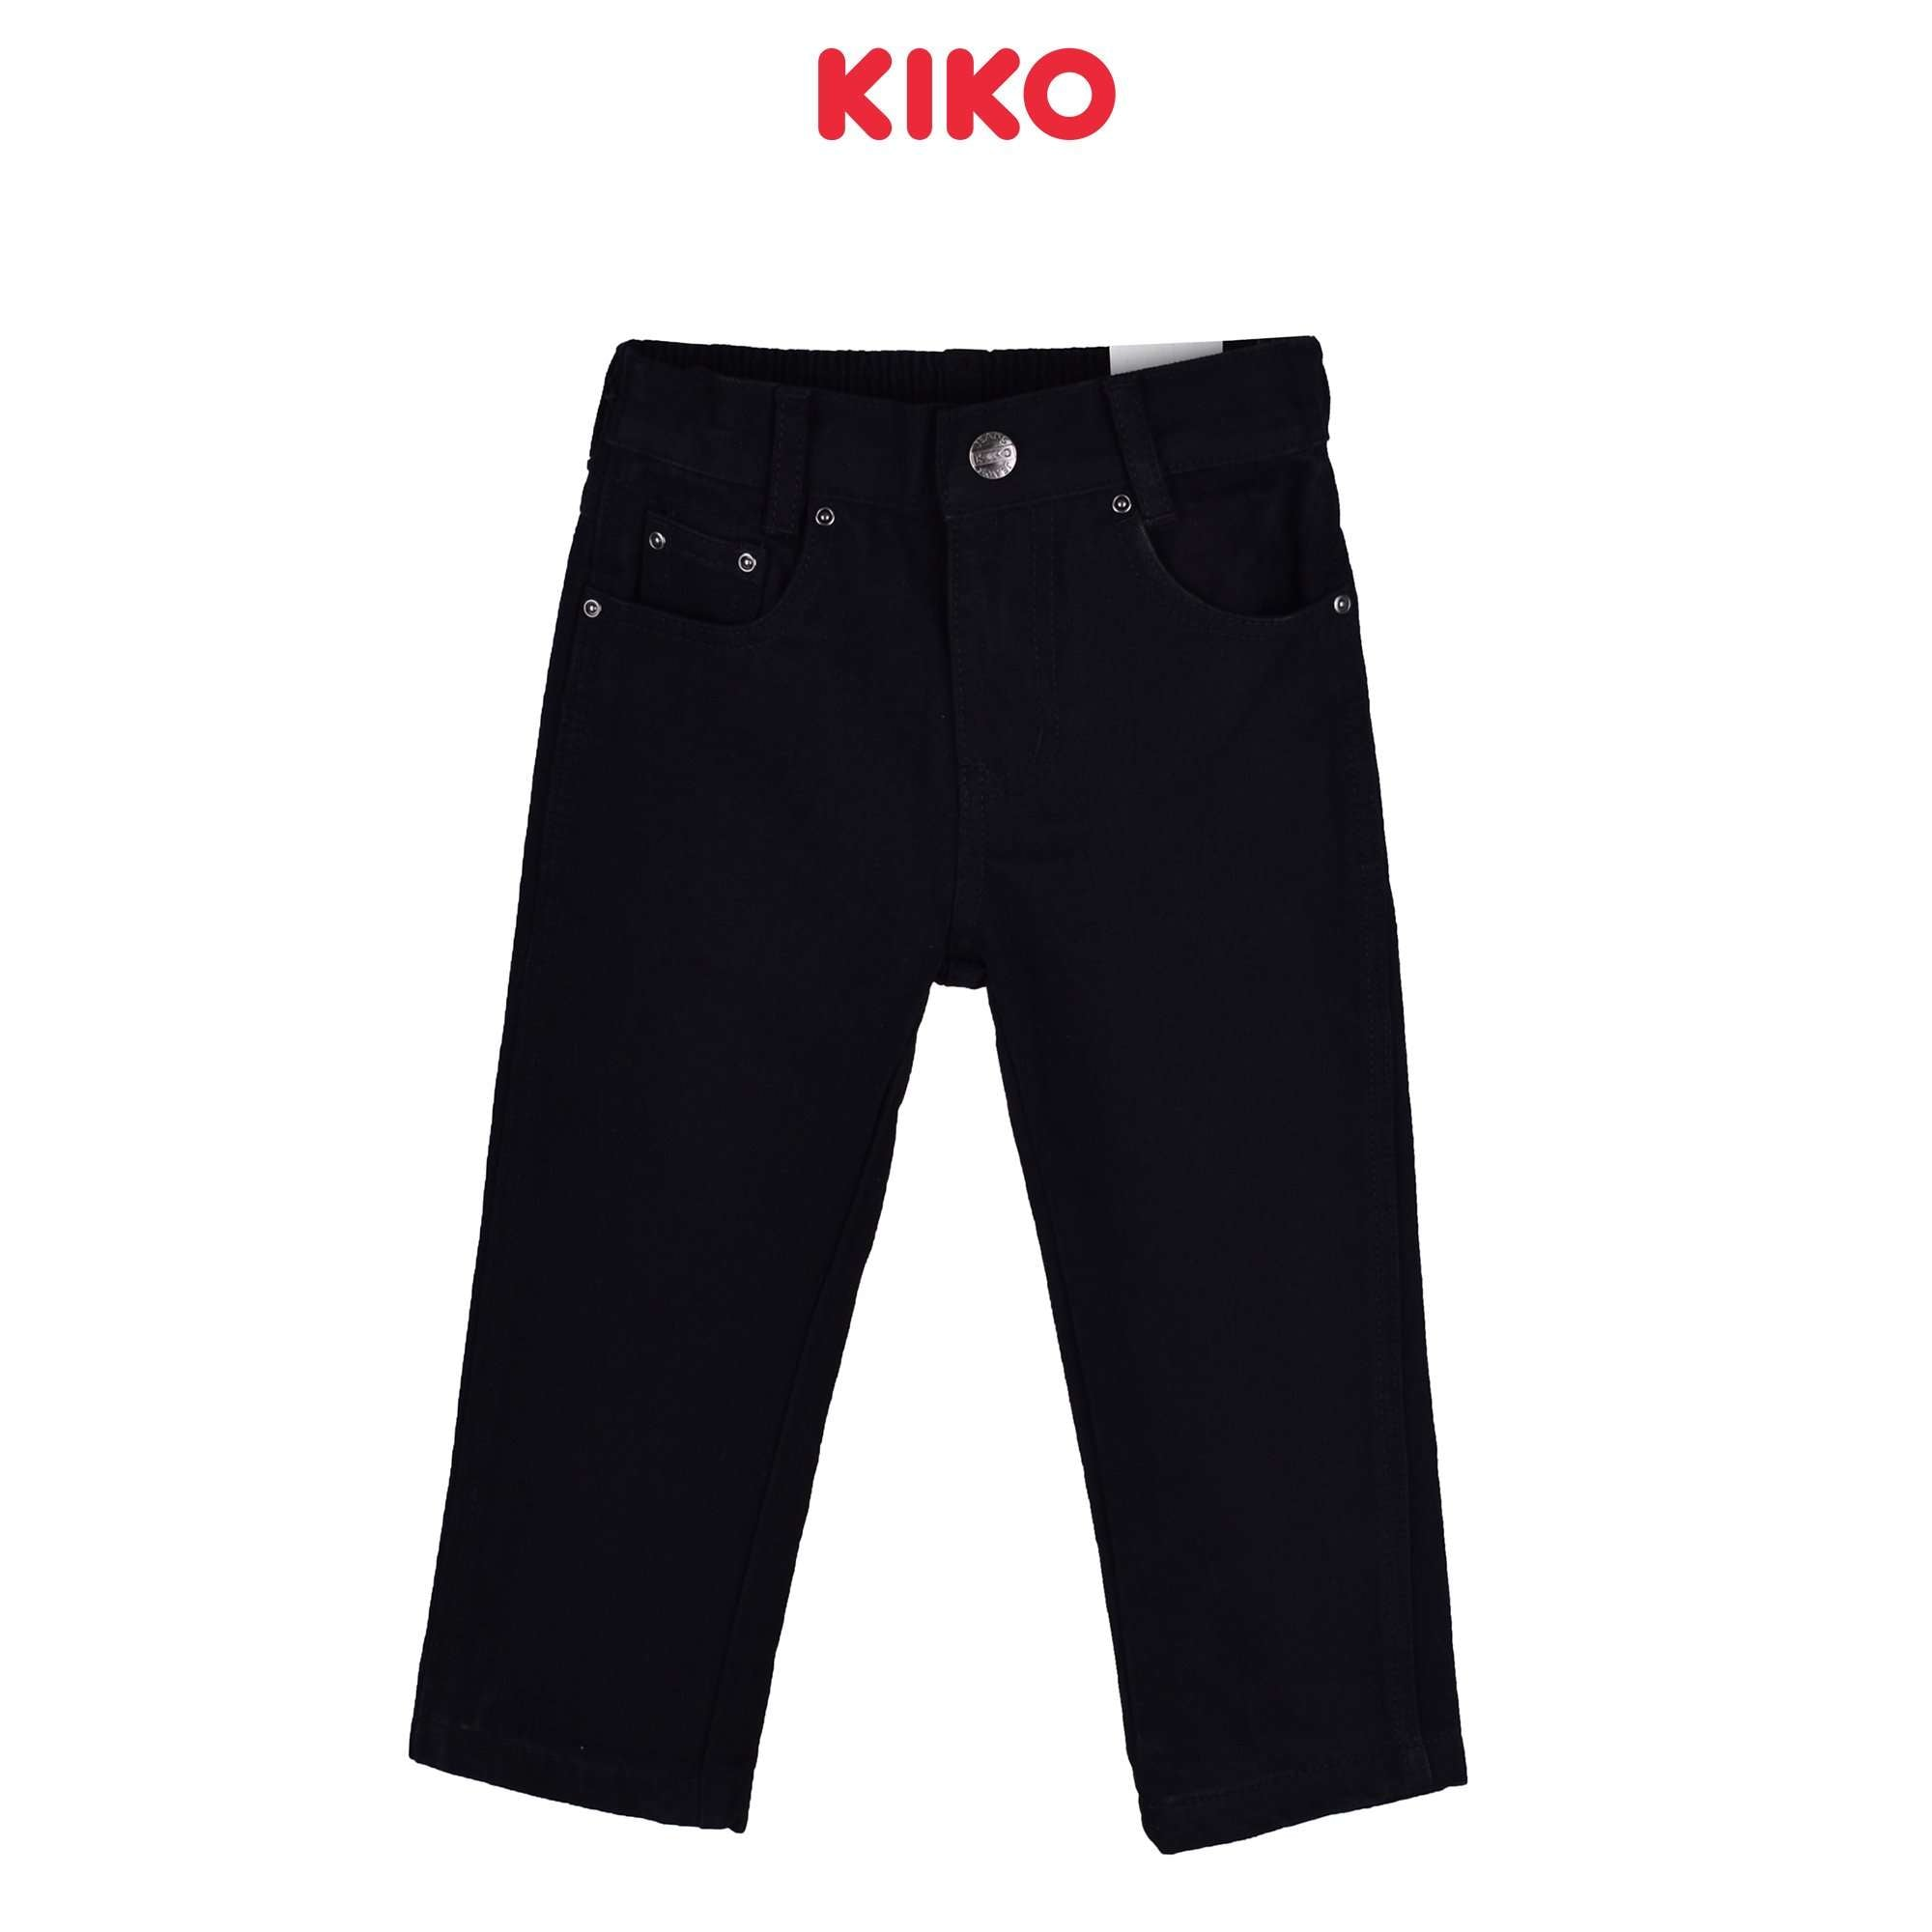 KIKO Boy Jeans Regular Fit 130056-211-G9 : Buy KIKO online at CMG.MY